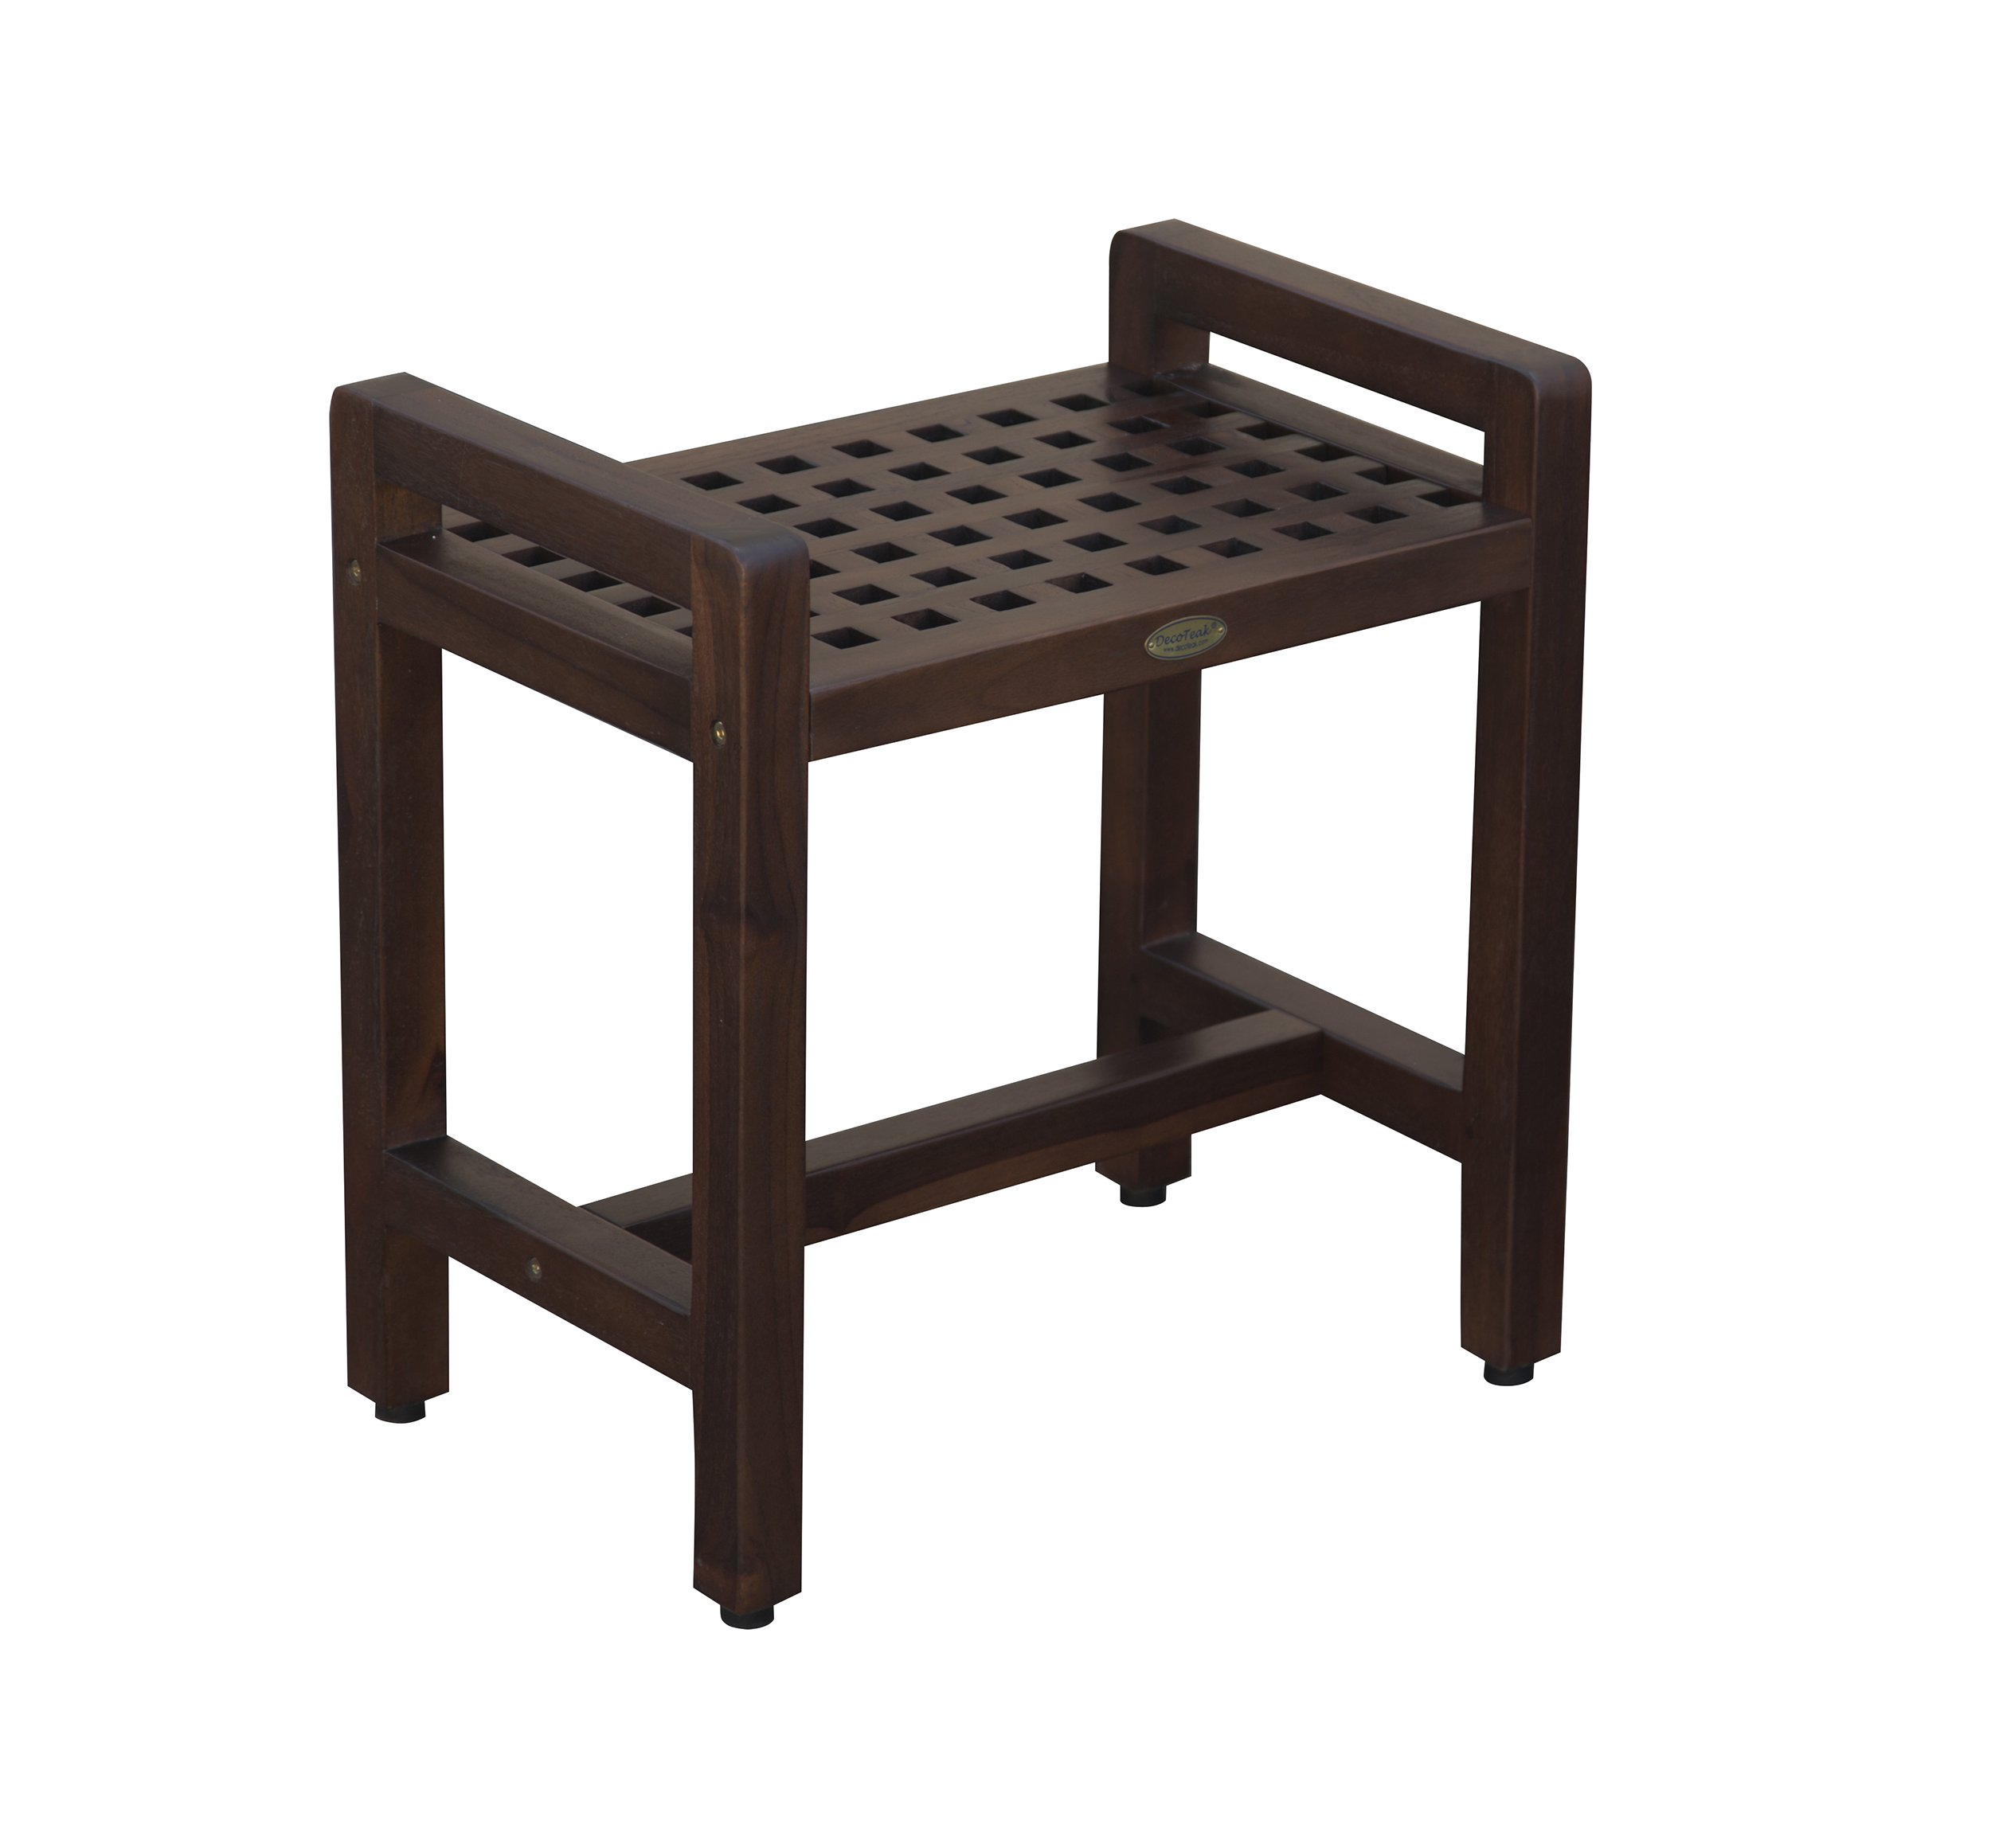 Decoteak Contemporary Teak Shower Stool 20'' Espalier Lattice Pattern- Adjustable Height Foot Pads